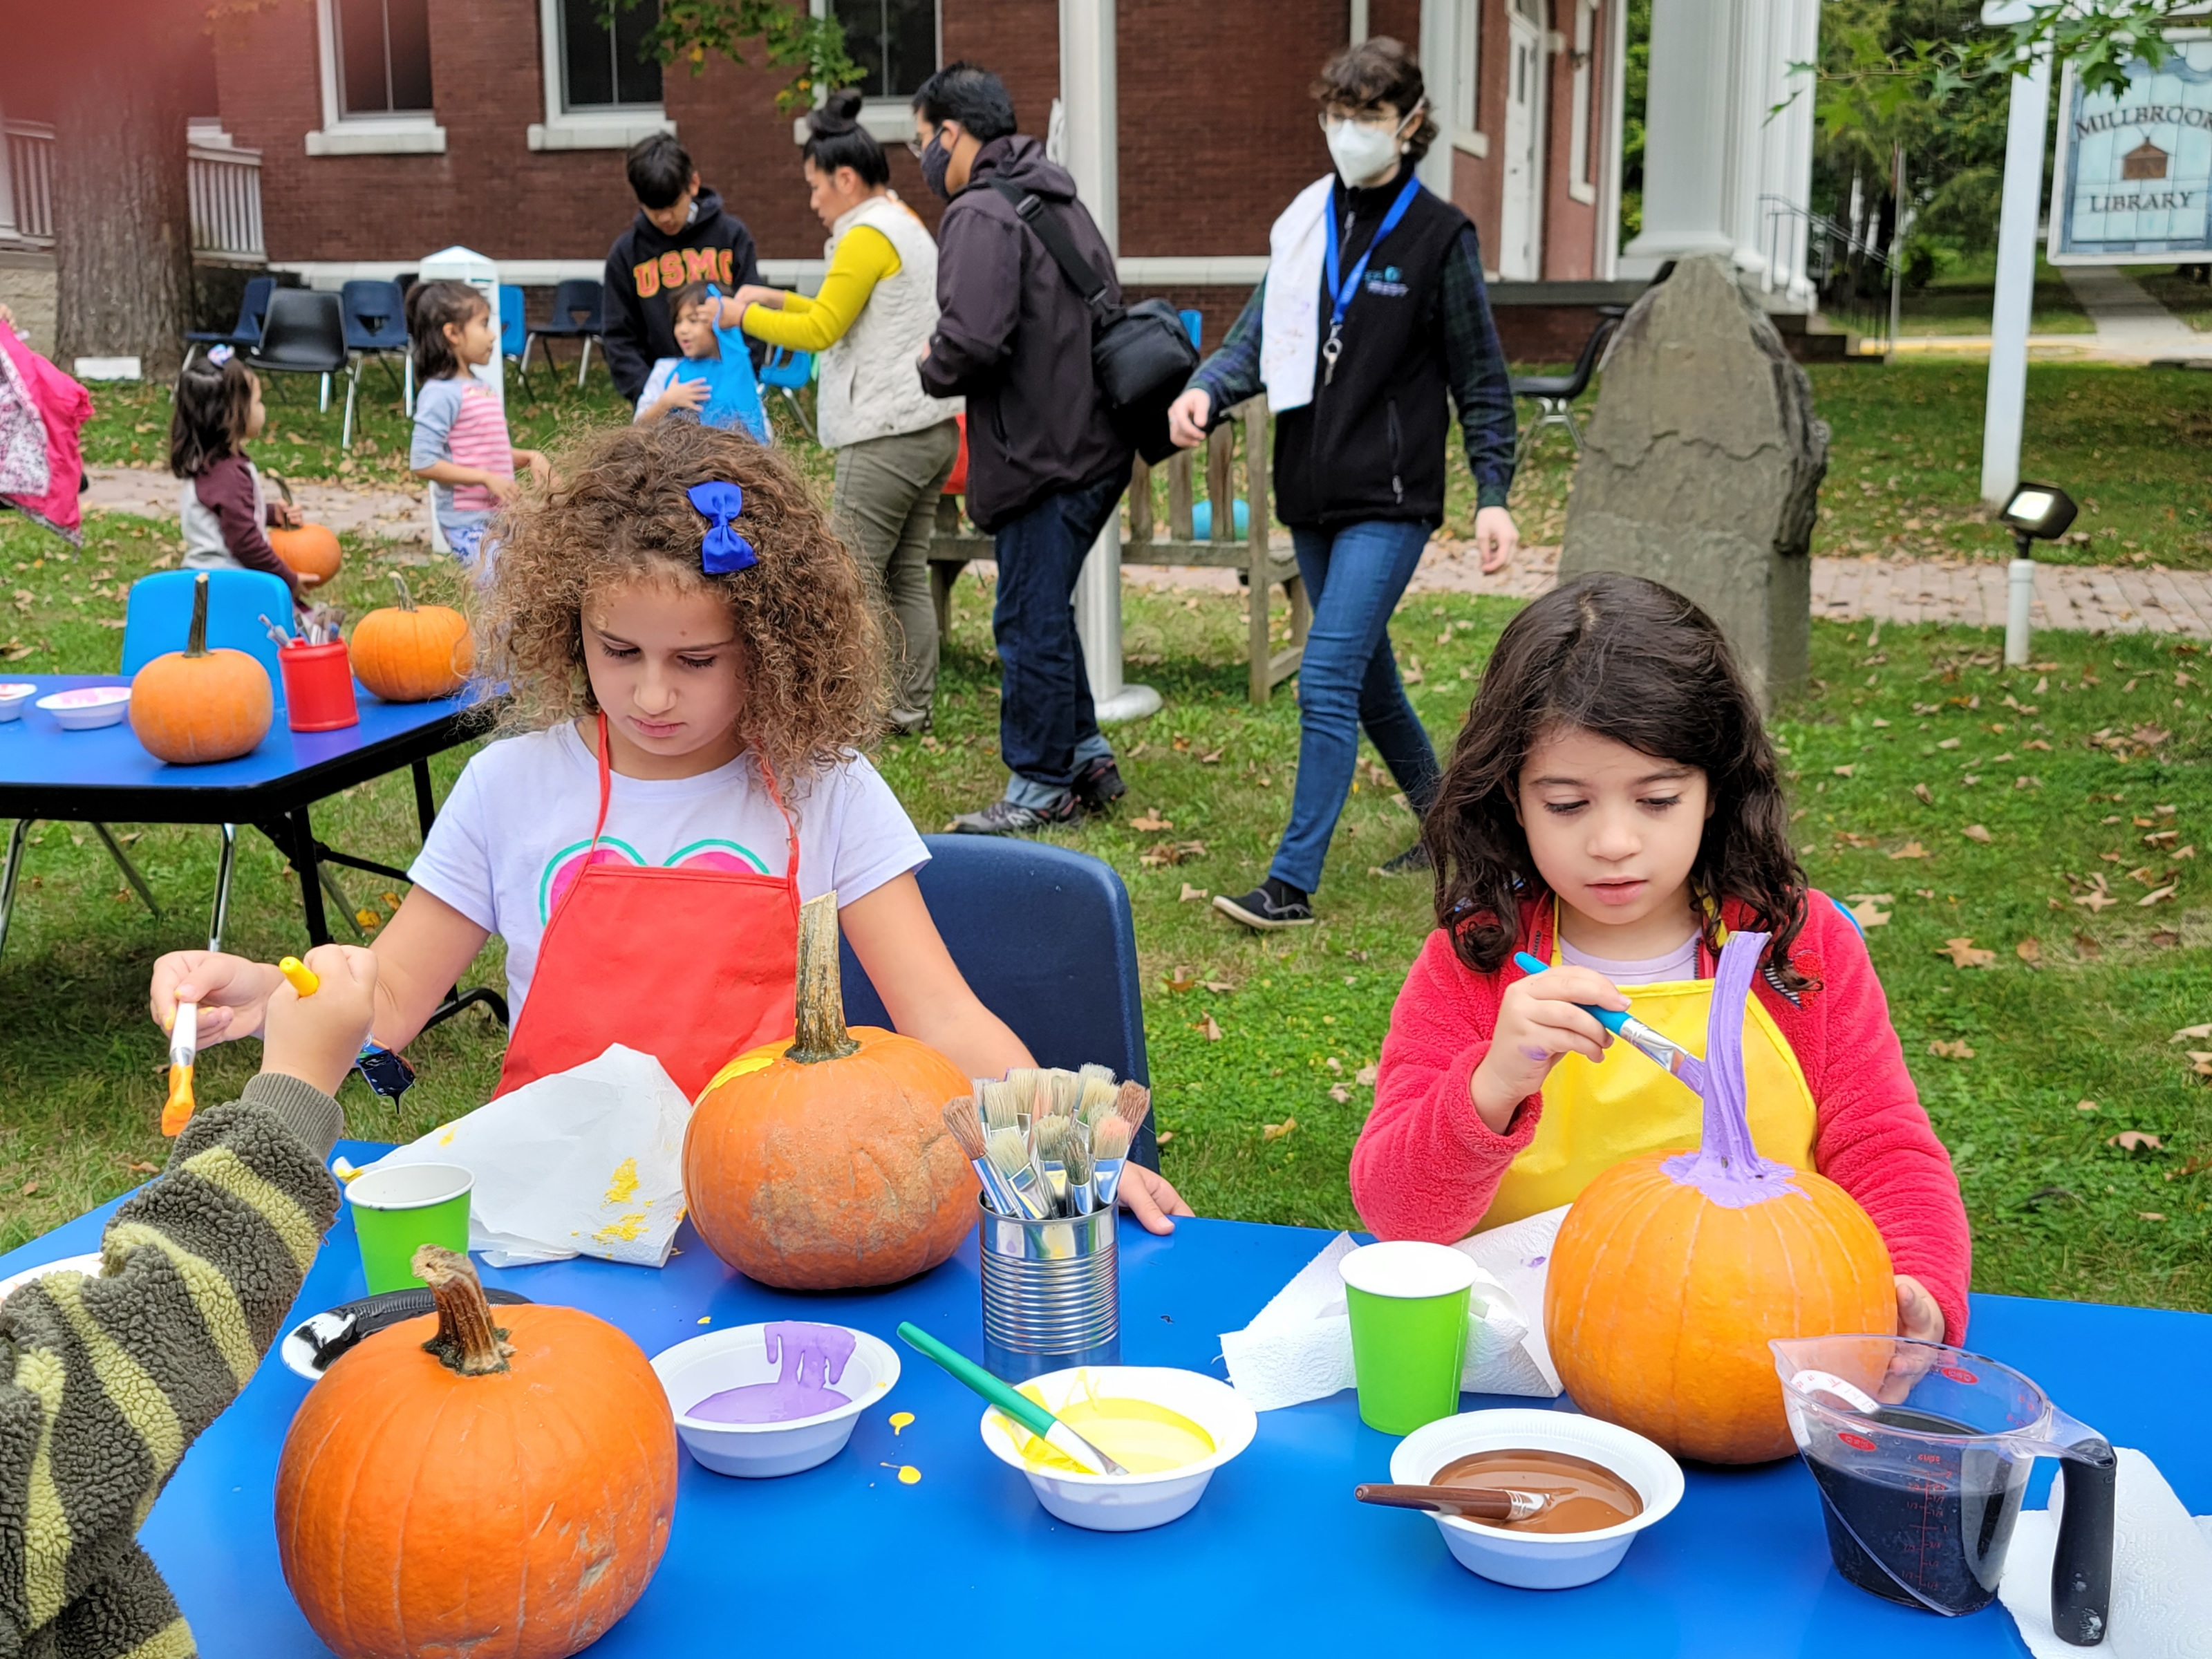 <strong>From left, Isabella Blum, 7, and her friend, Nora Diamant, also 7, were busy painting faces on pumpkins at the Fall in Love with Millbrook pumpkin painting station at the Millbrook Library on Saturday, Oct. 9.<em>Photo by Judith O'Hara Balfe</em></strong>